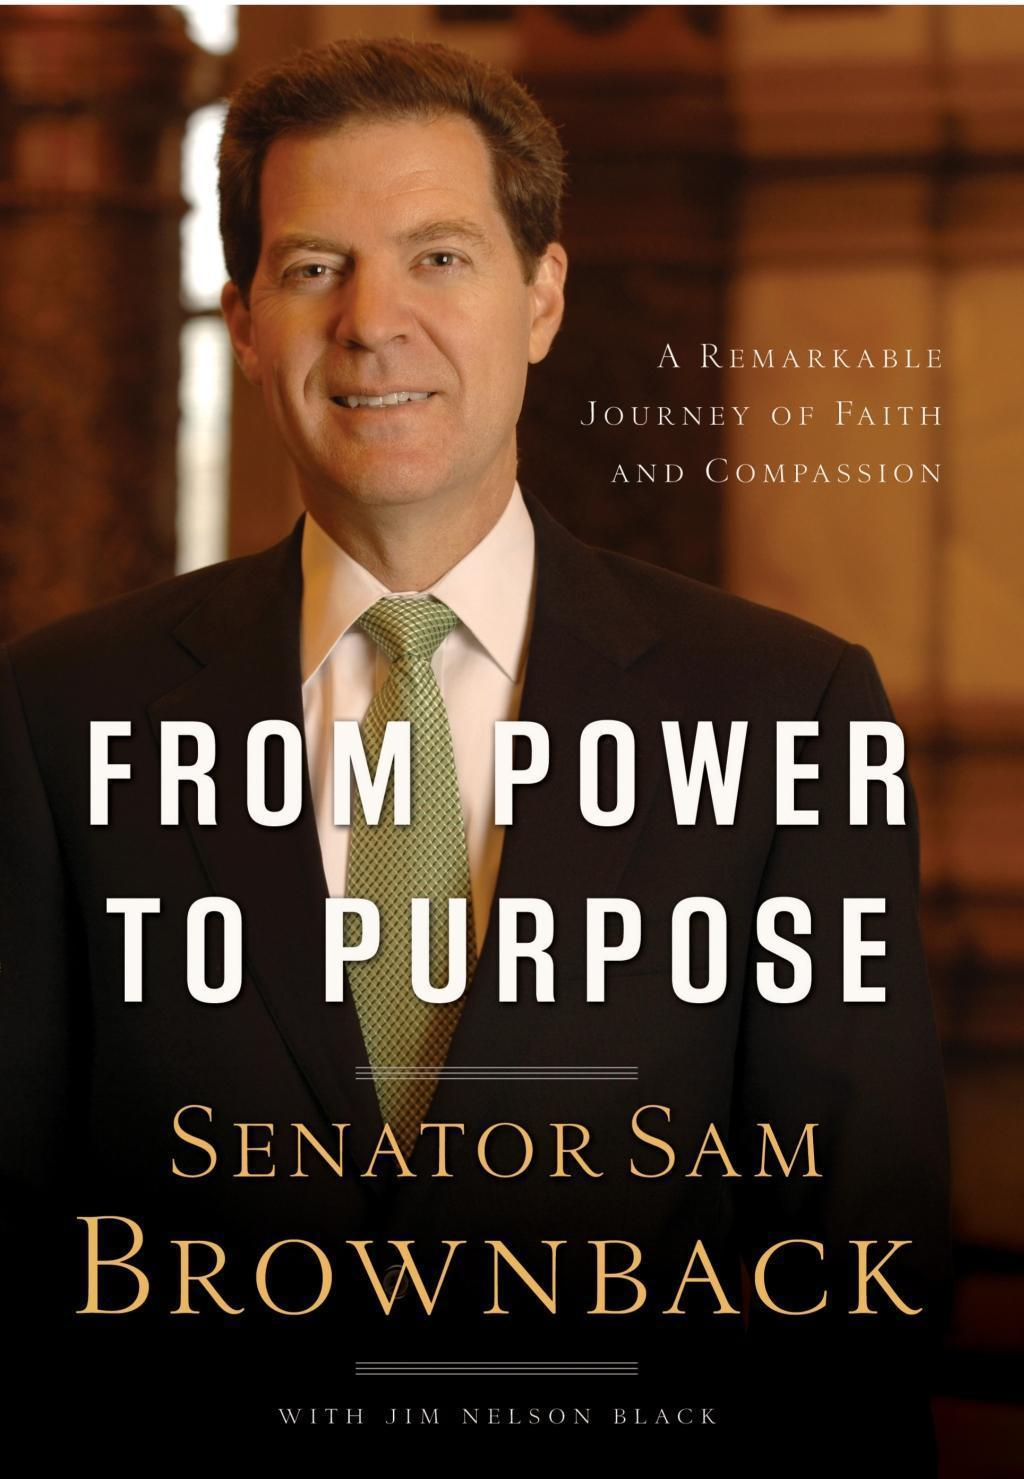 From Power to Purpose